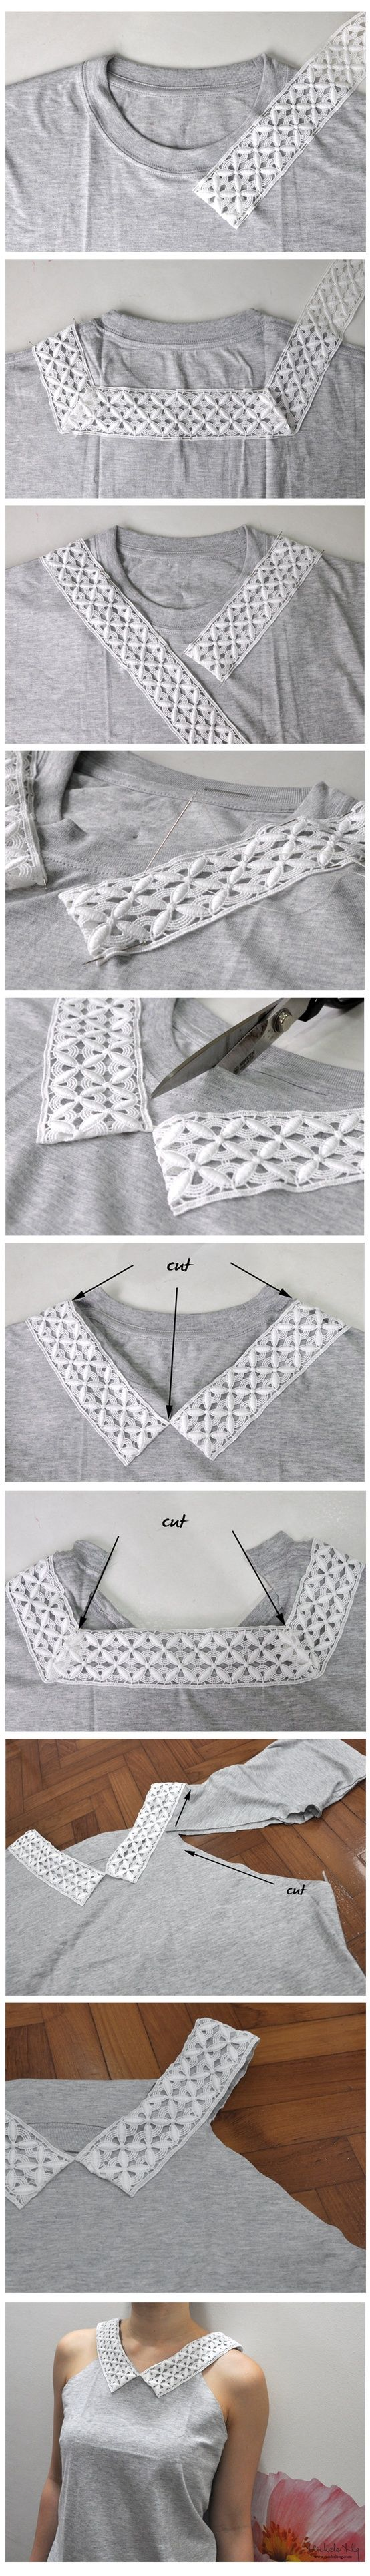 Academia Craft | Artesanato e artes para relaxar | DIY: Customização de camisetas. SOMEONE MAKE THIS FOR ME PLEASE.